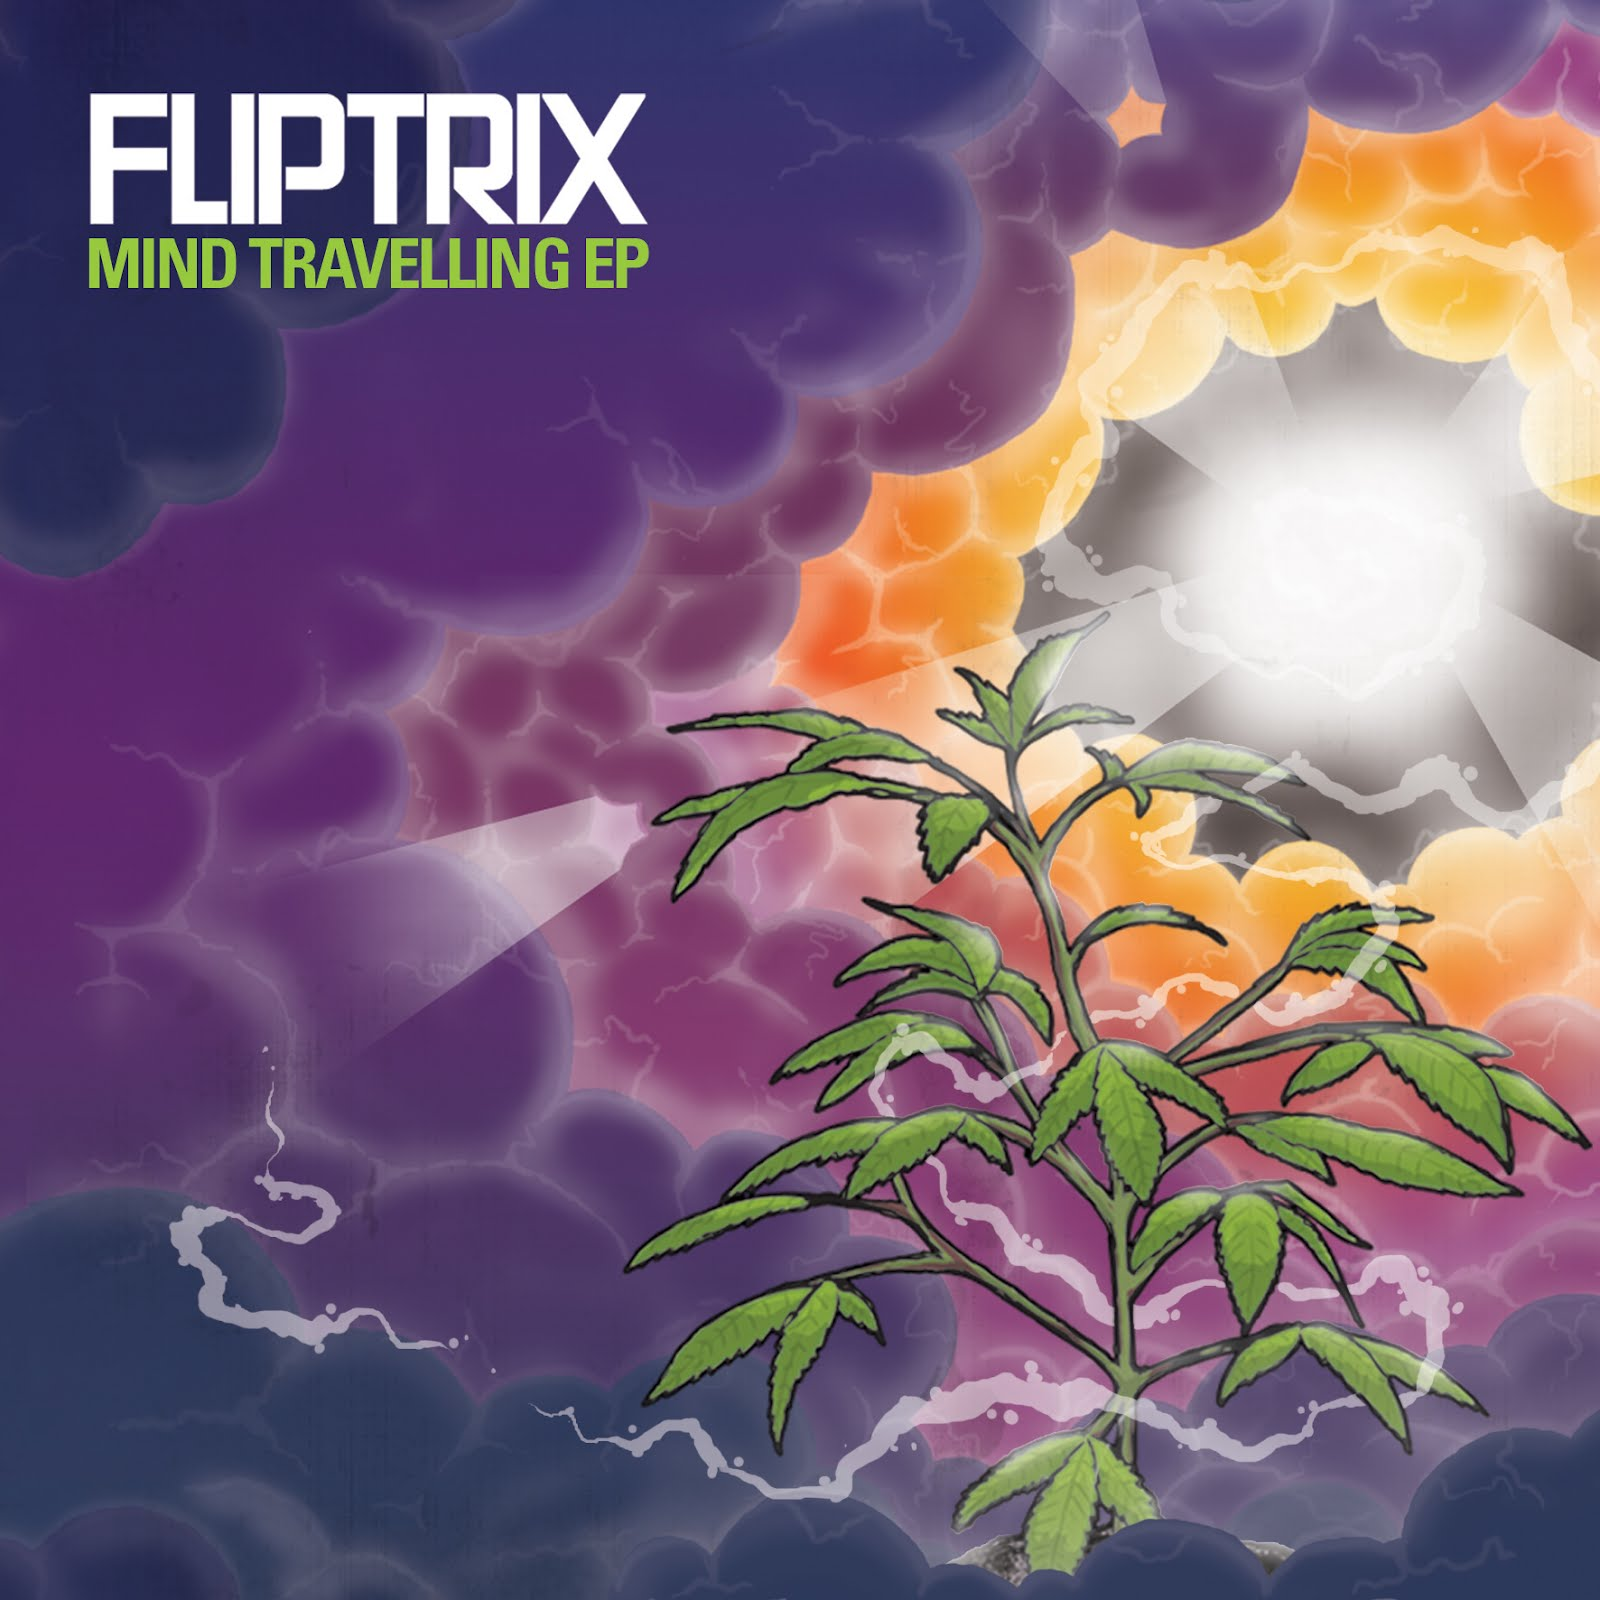 Fliptrix – Earth's Axis